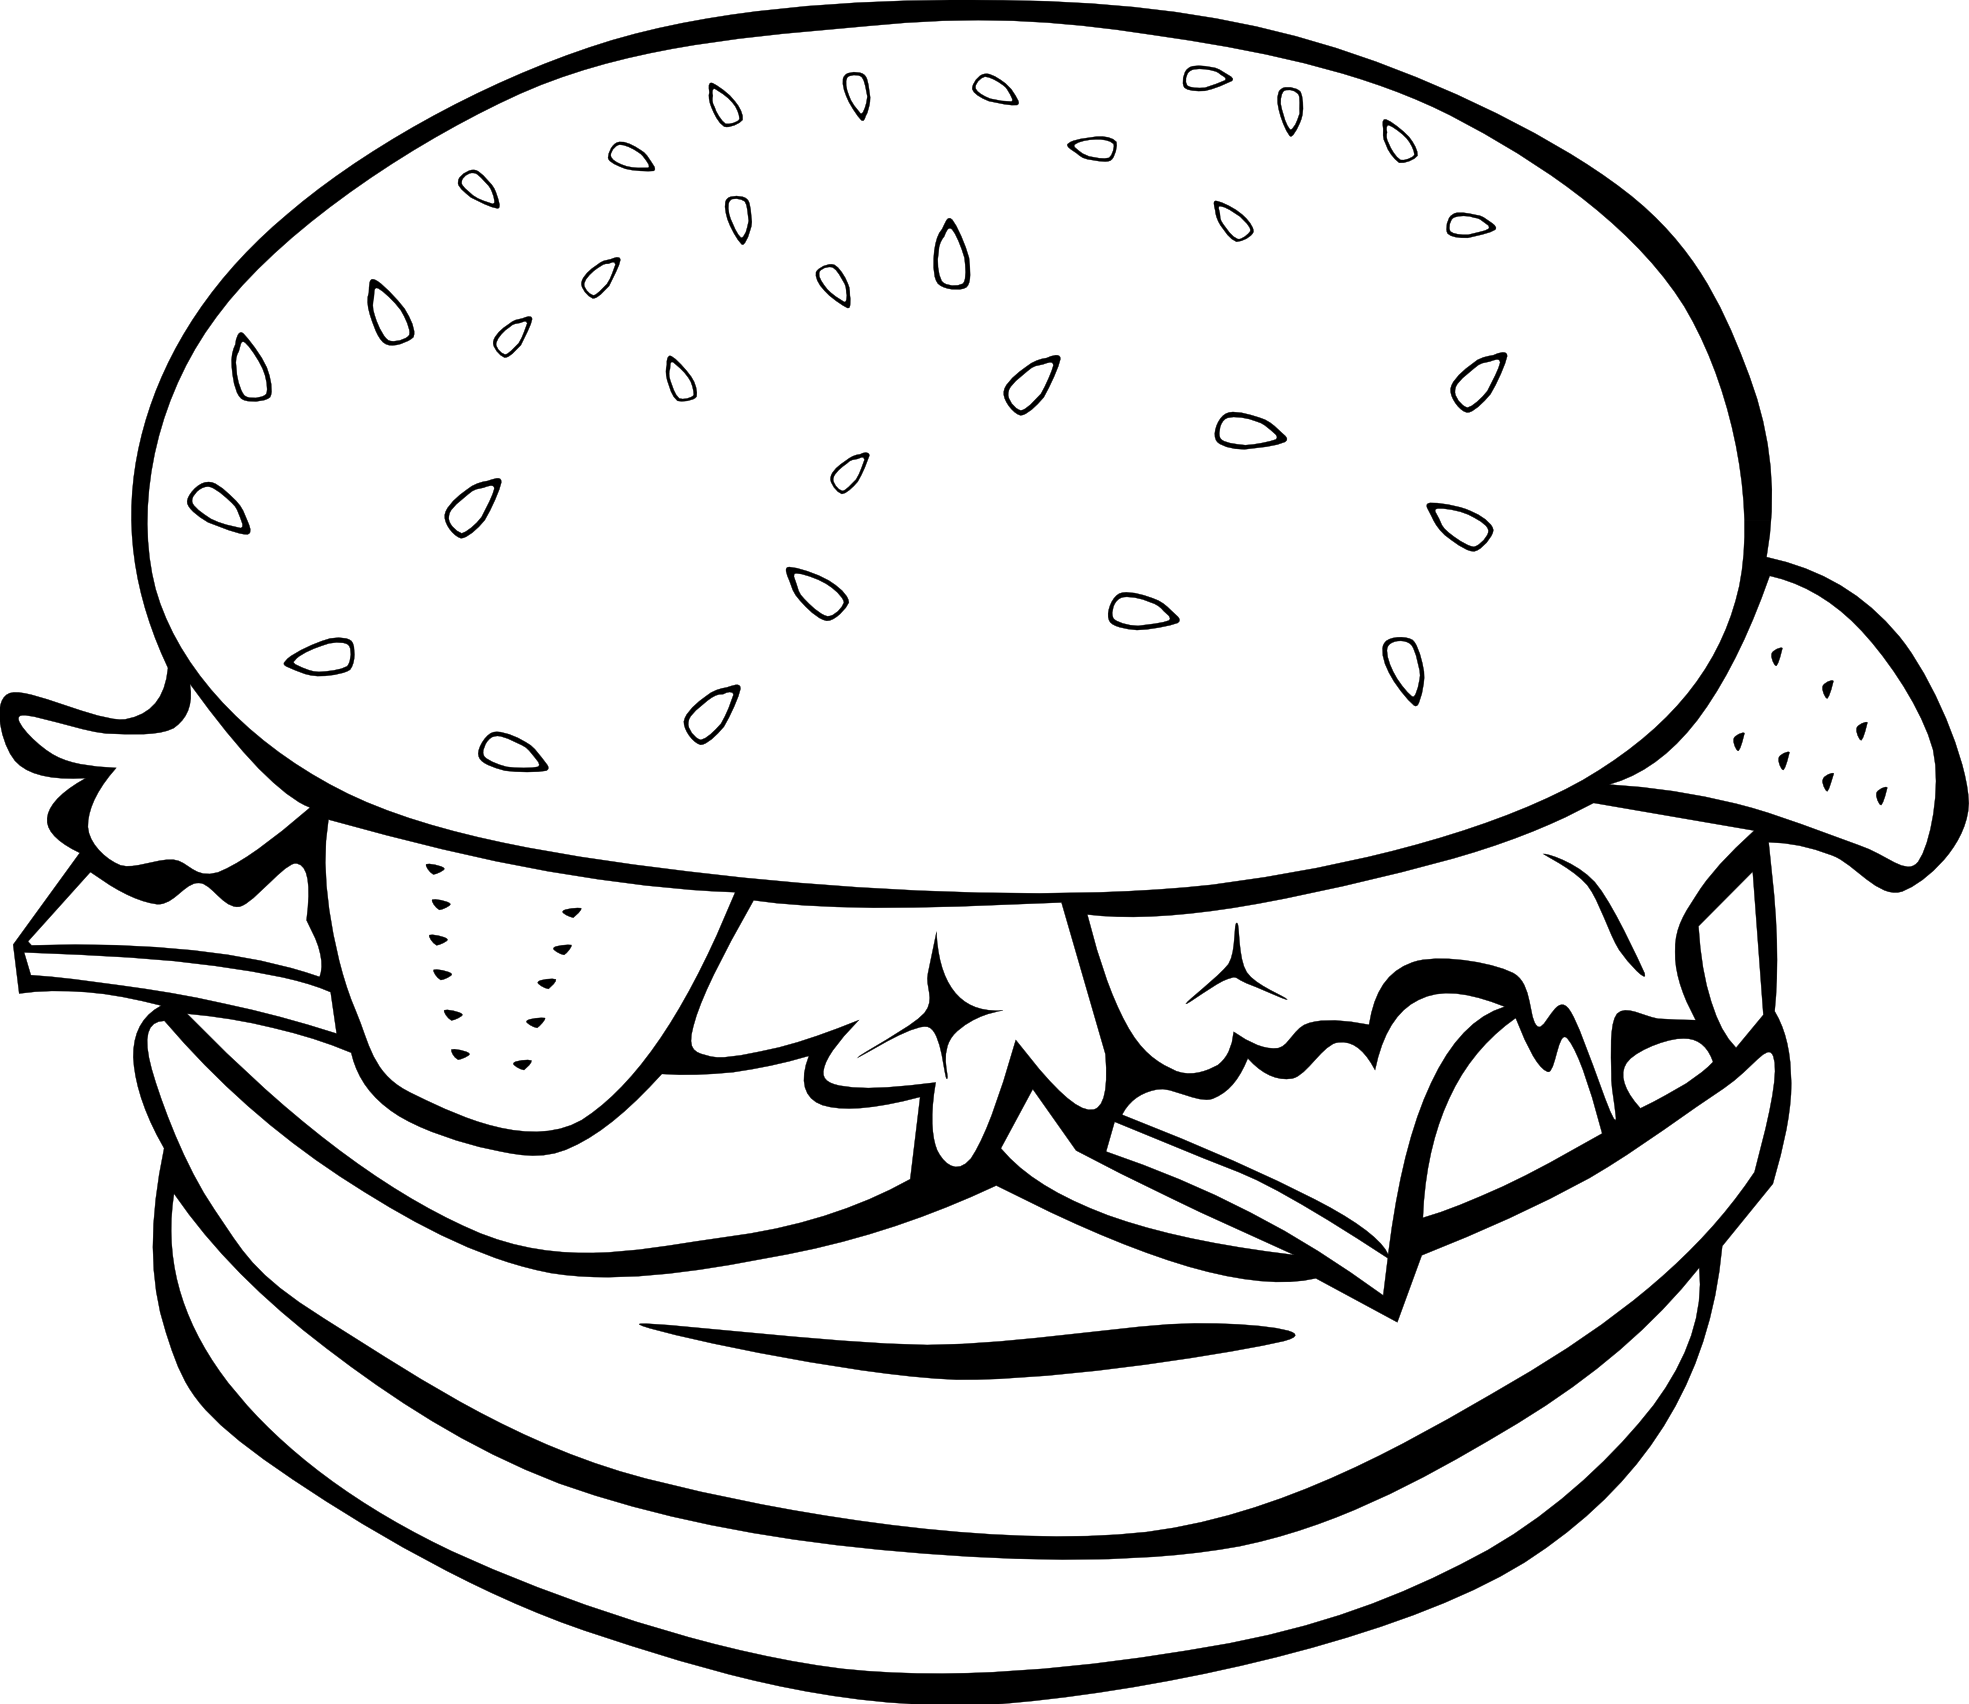 Lunch svg #7, Download drawings